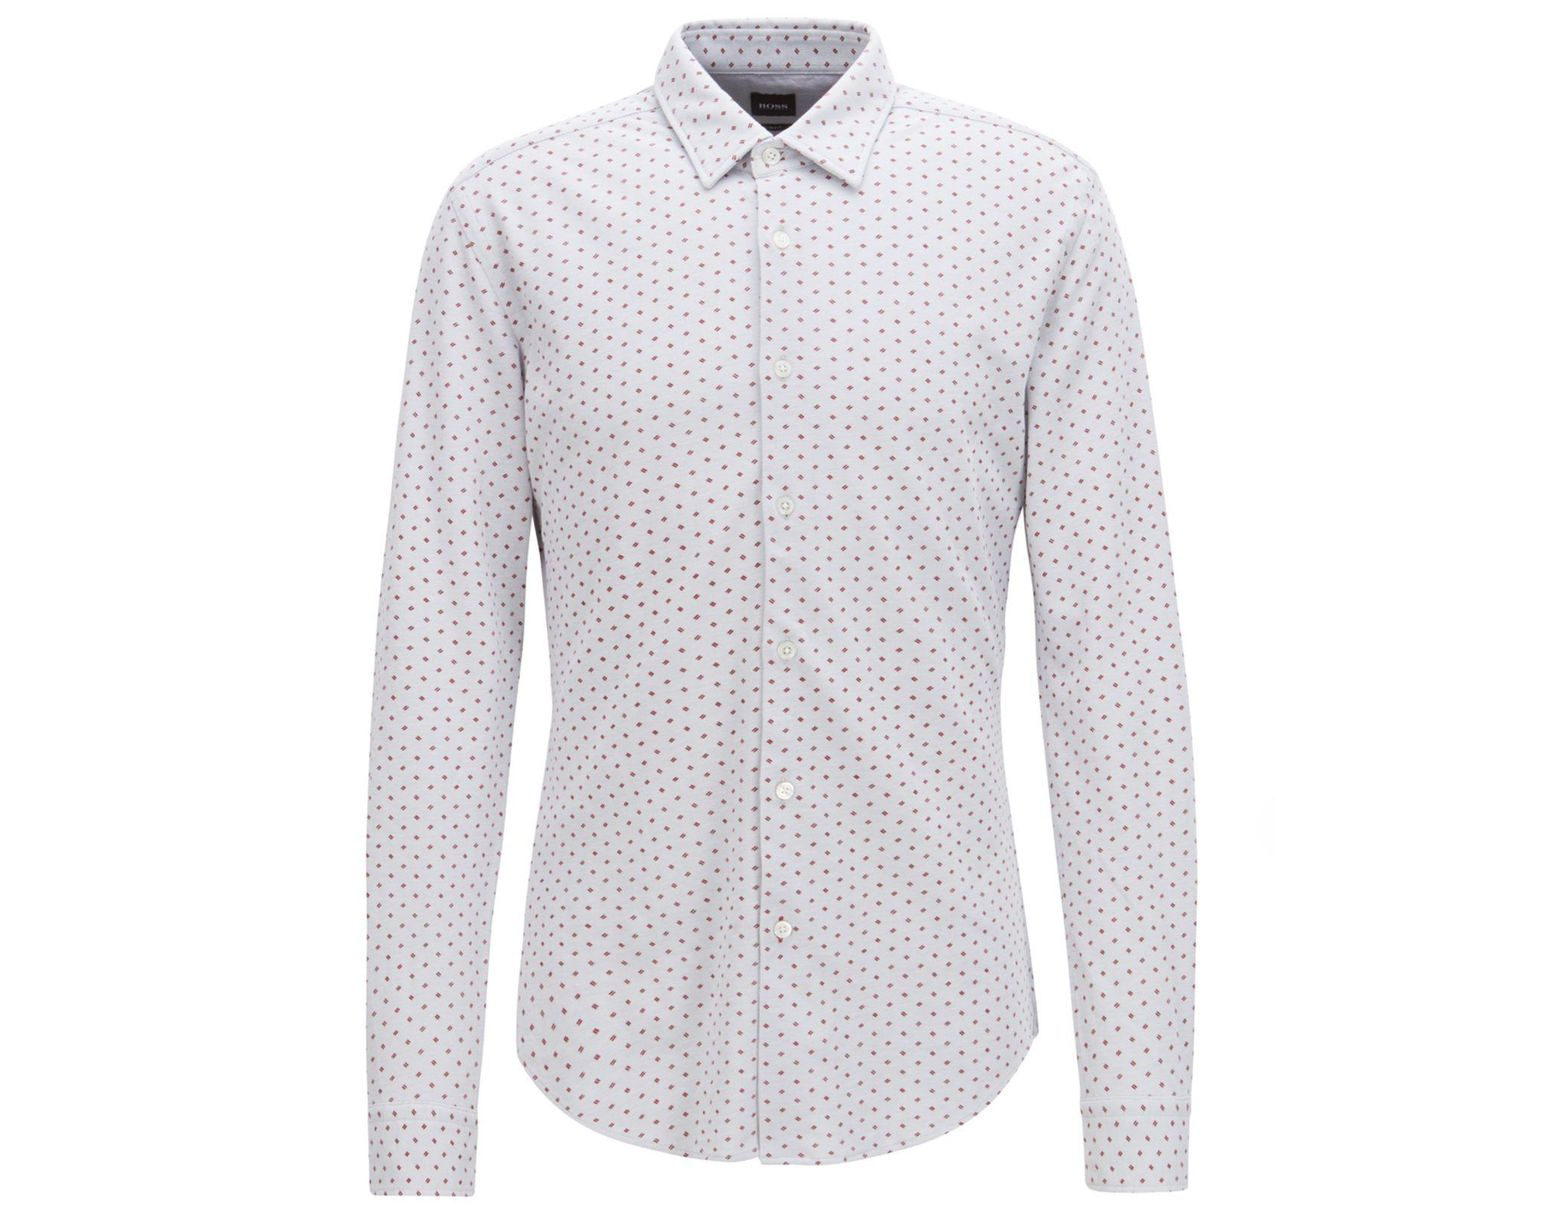 d081200bd BOSS Slim-fit Shirt In Jersey Piqué With Exclusive Pattern in Metallic for  Men - Save 20% - Lyst